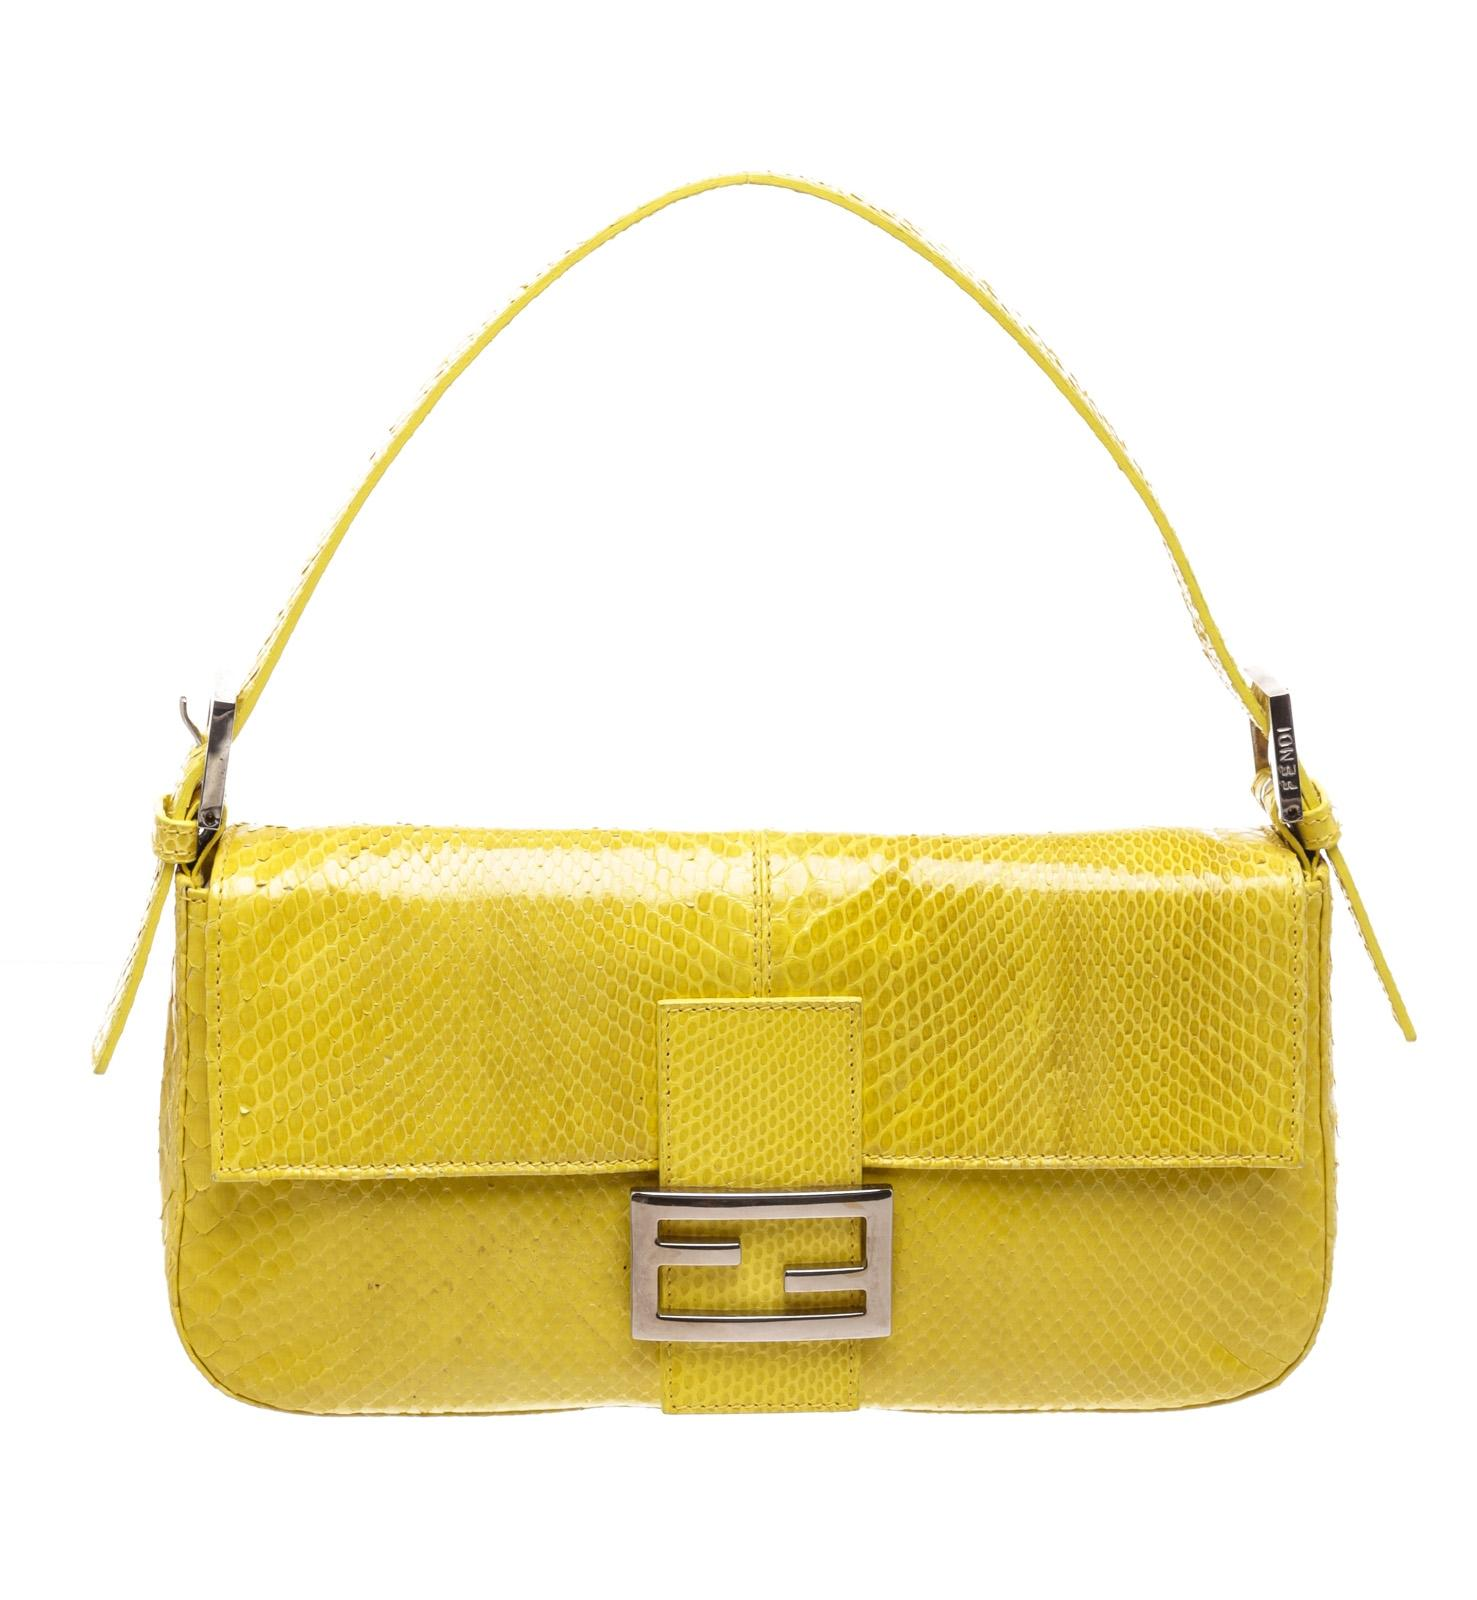 5d1255d9d7a2 ... yellow patent leather b bag 2d3f3 ac041  cheap fendi baguette fendi  baguette b60dd 61c48